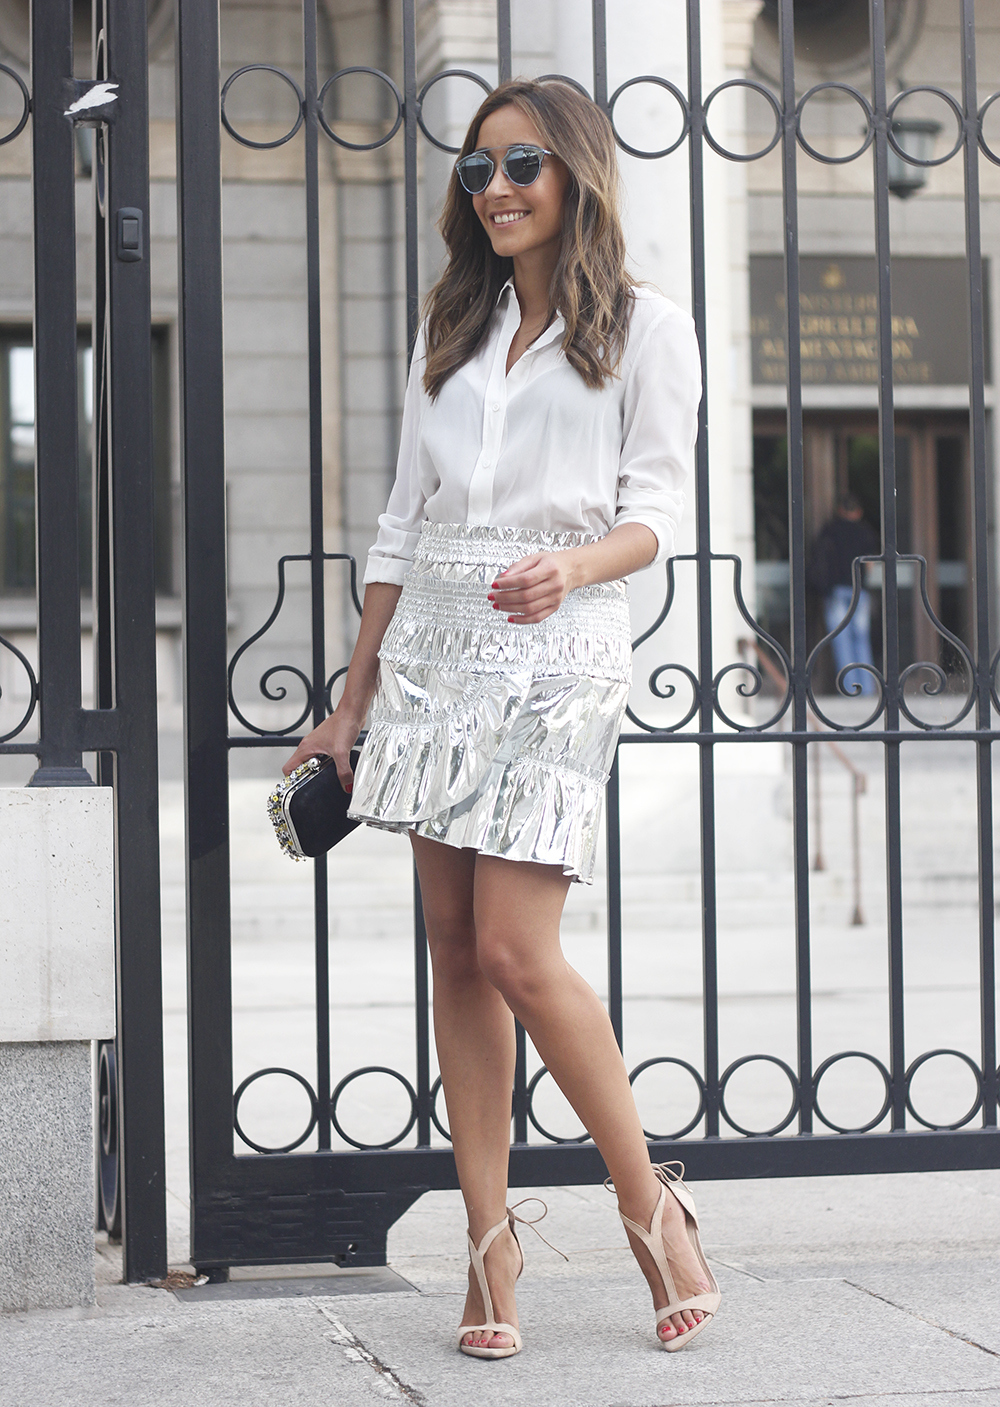 Isabel Marant Metallic Skirt white shirt nude sandals dior so real sunnies outfit style fashion21